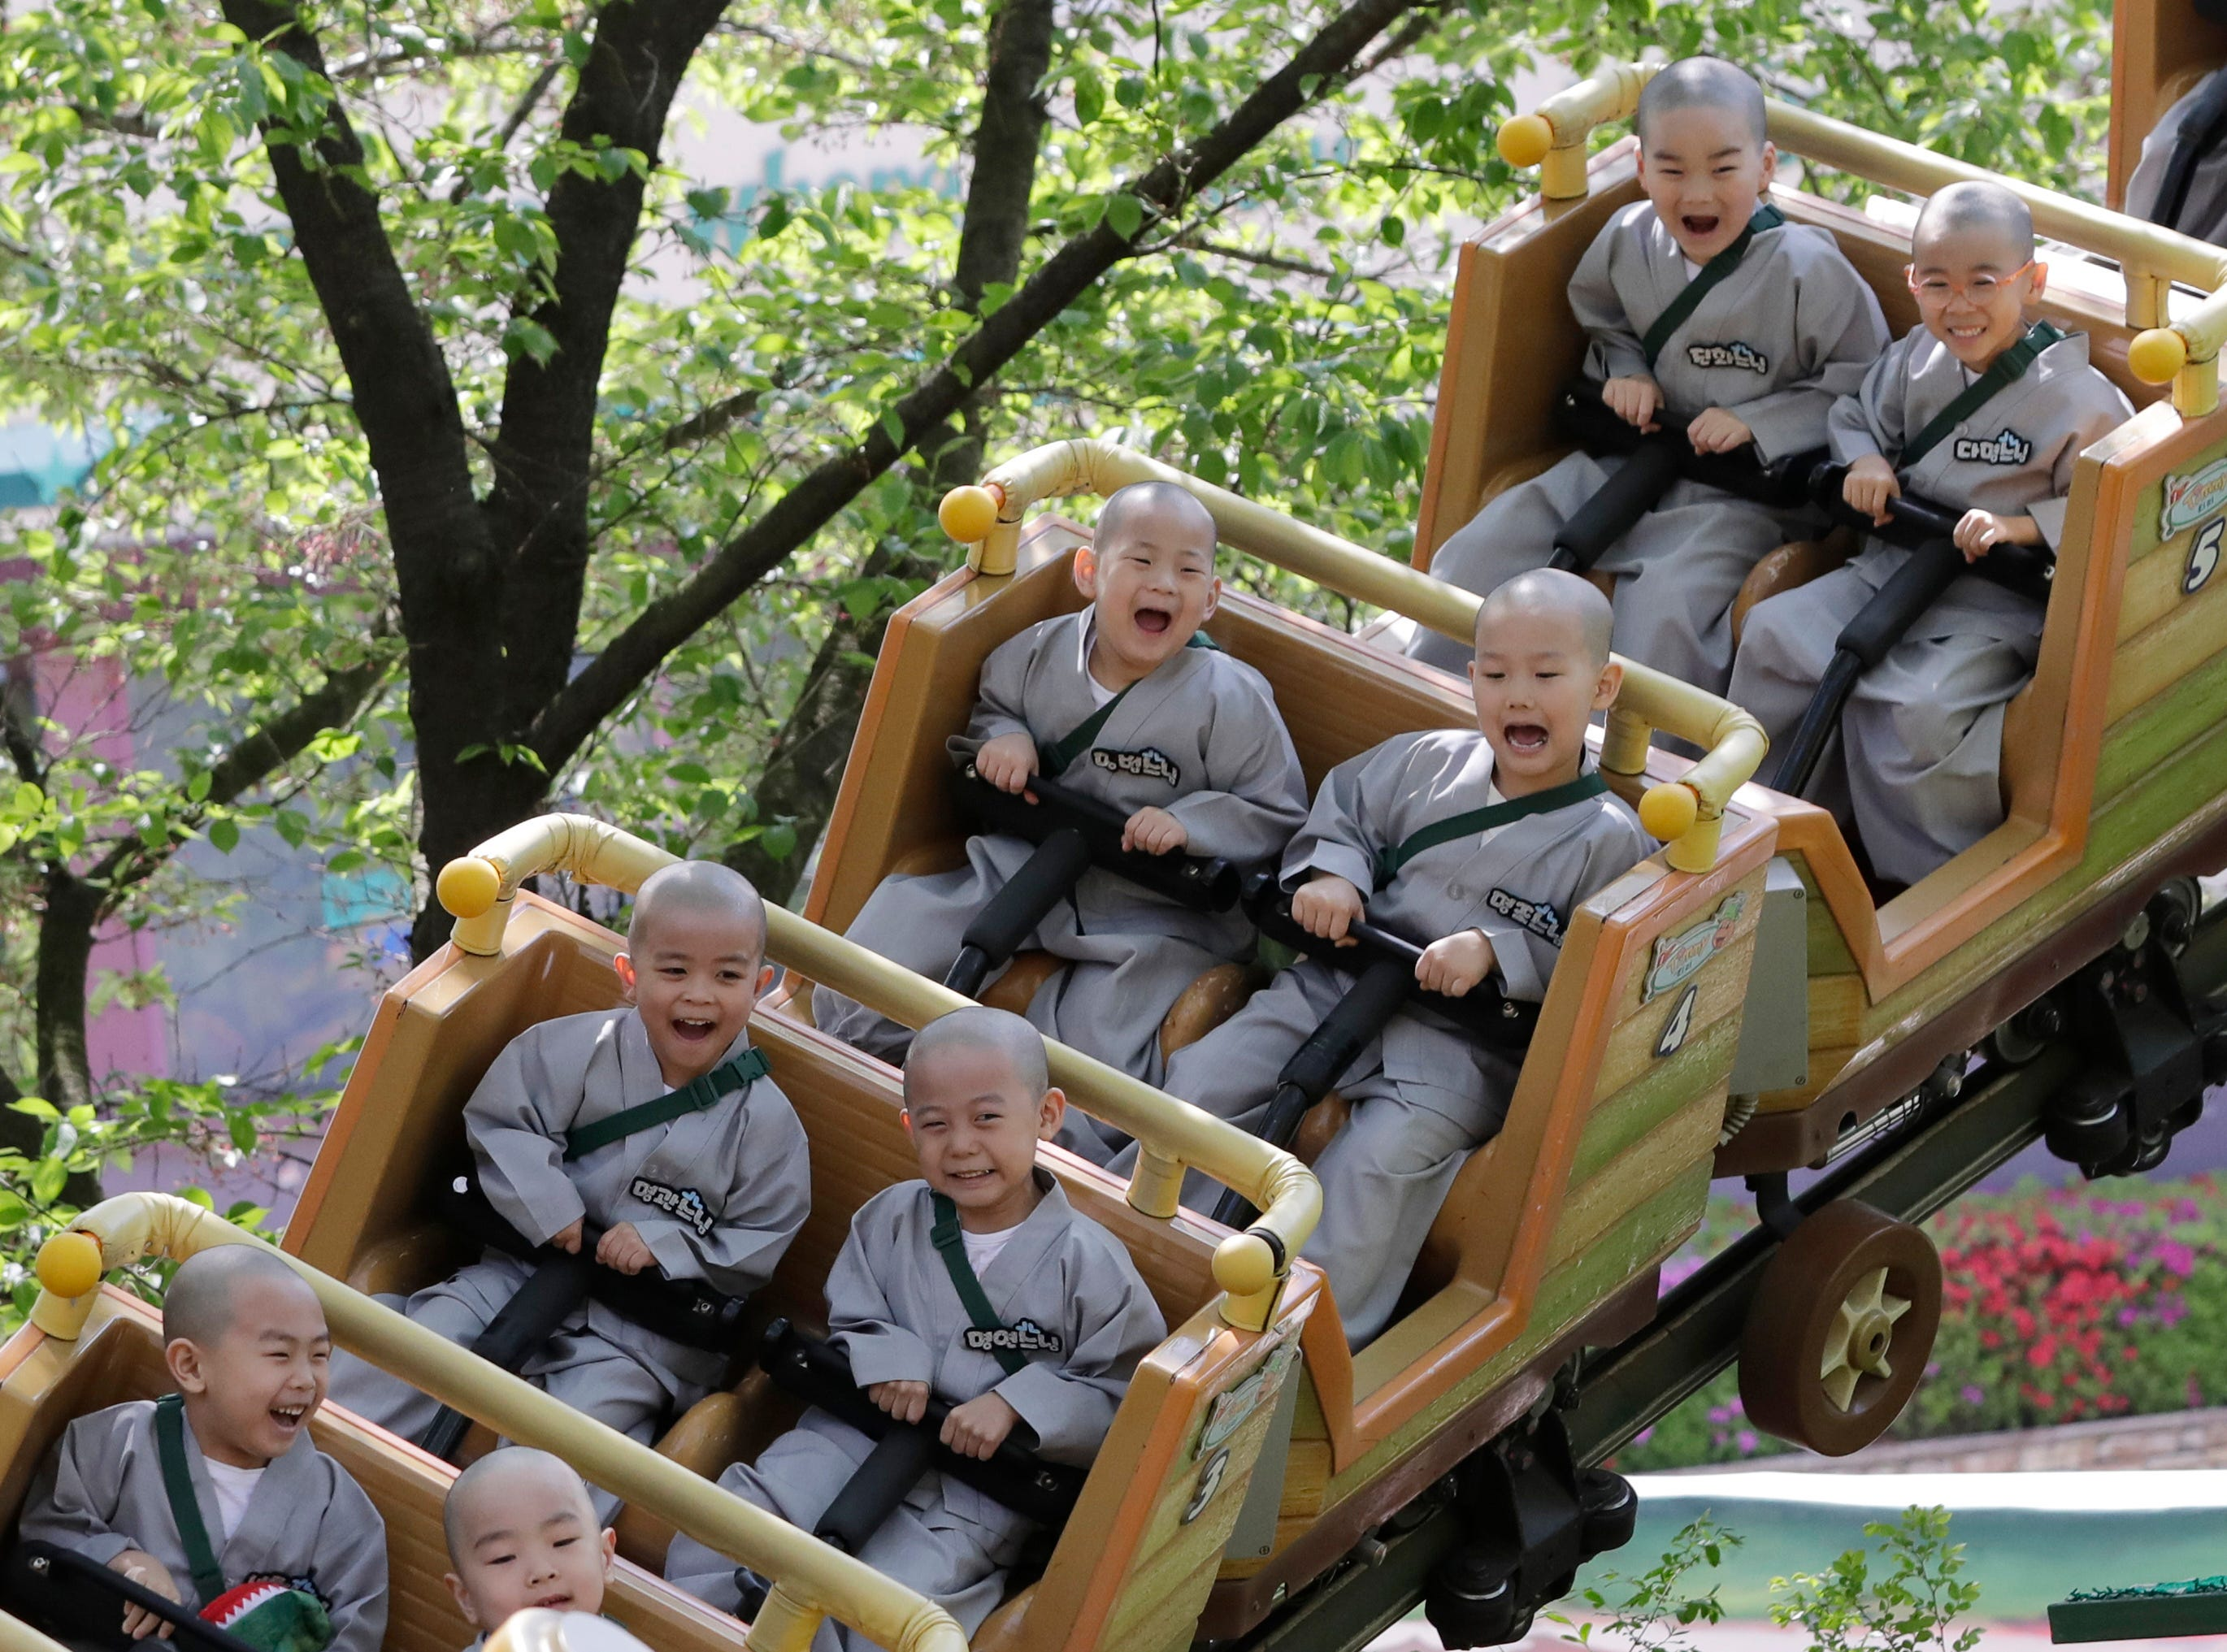 Shaven-headed children ride a roller coaster at the Everland amusement park in Yongin, South Korea, Thursday, May 2, 2019. Ten children entered a temple to have an experience of monks' life for three weeks. Buddhists visit a temple across the country to celebrate the Buddha's upcoming birthday on May 12.